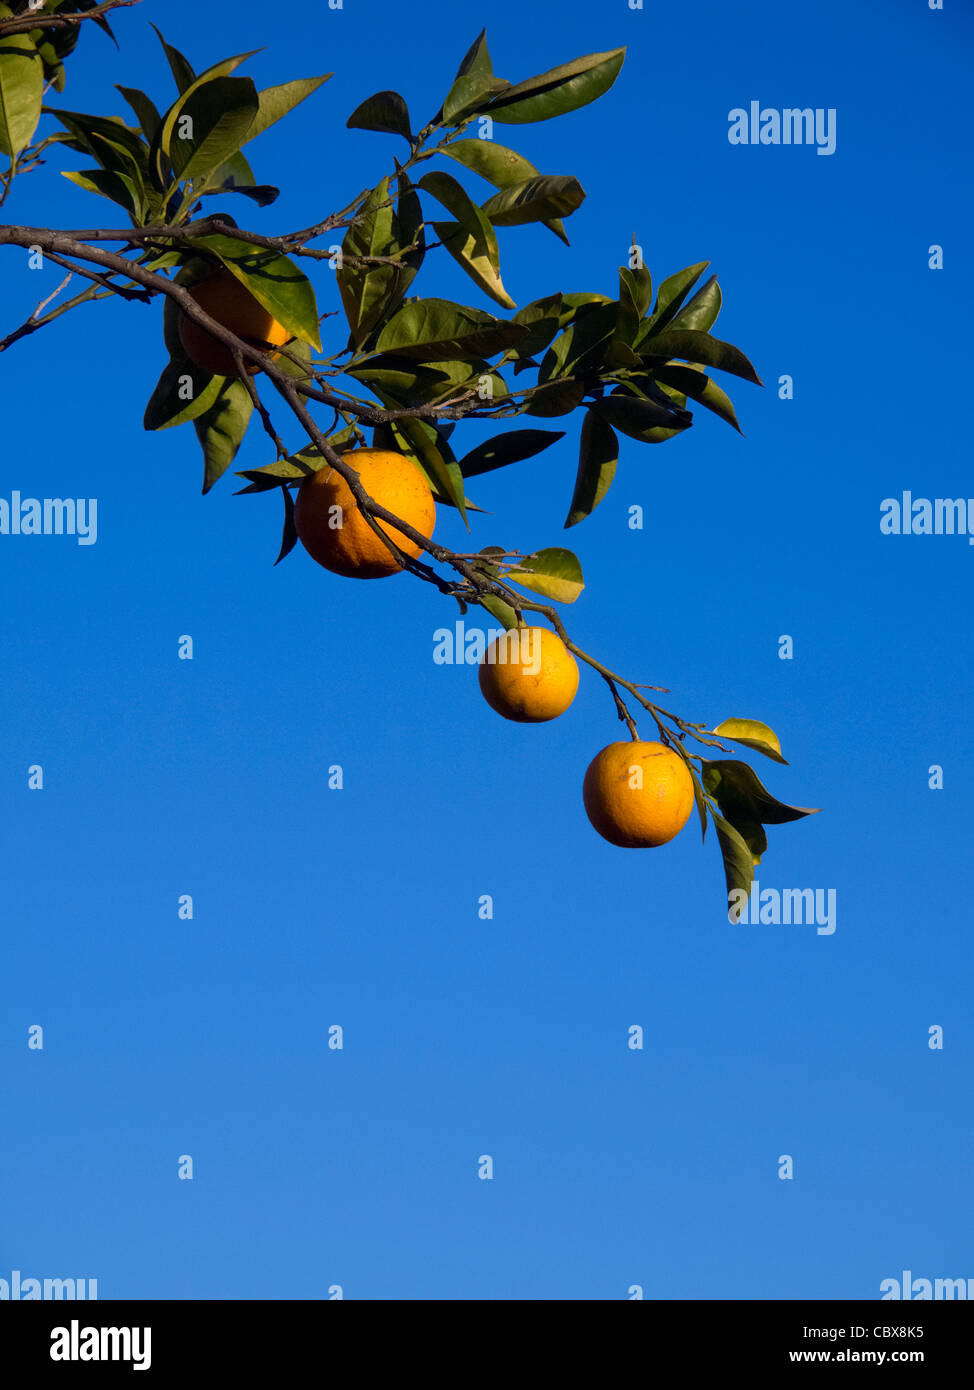 Ripe oranges in orange tree branch against a blue sky Stock Photo